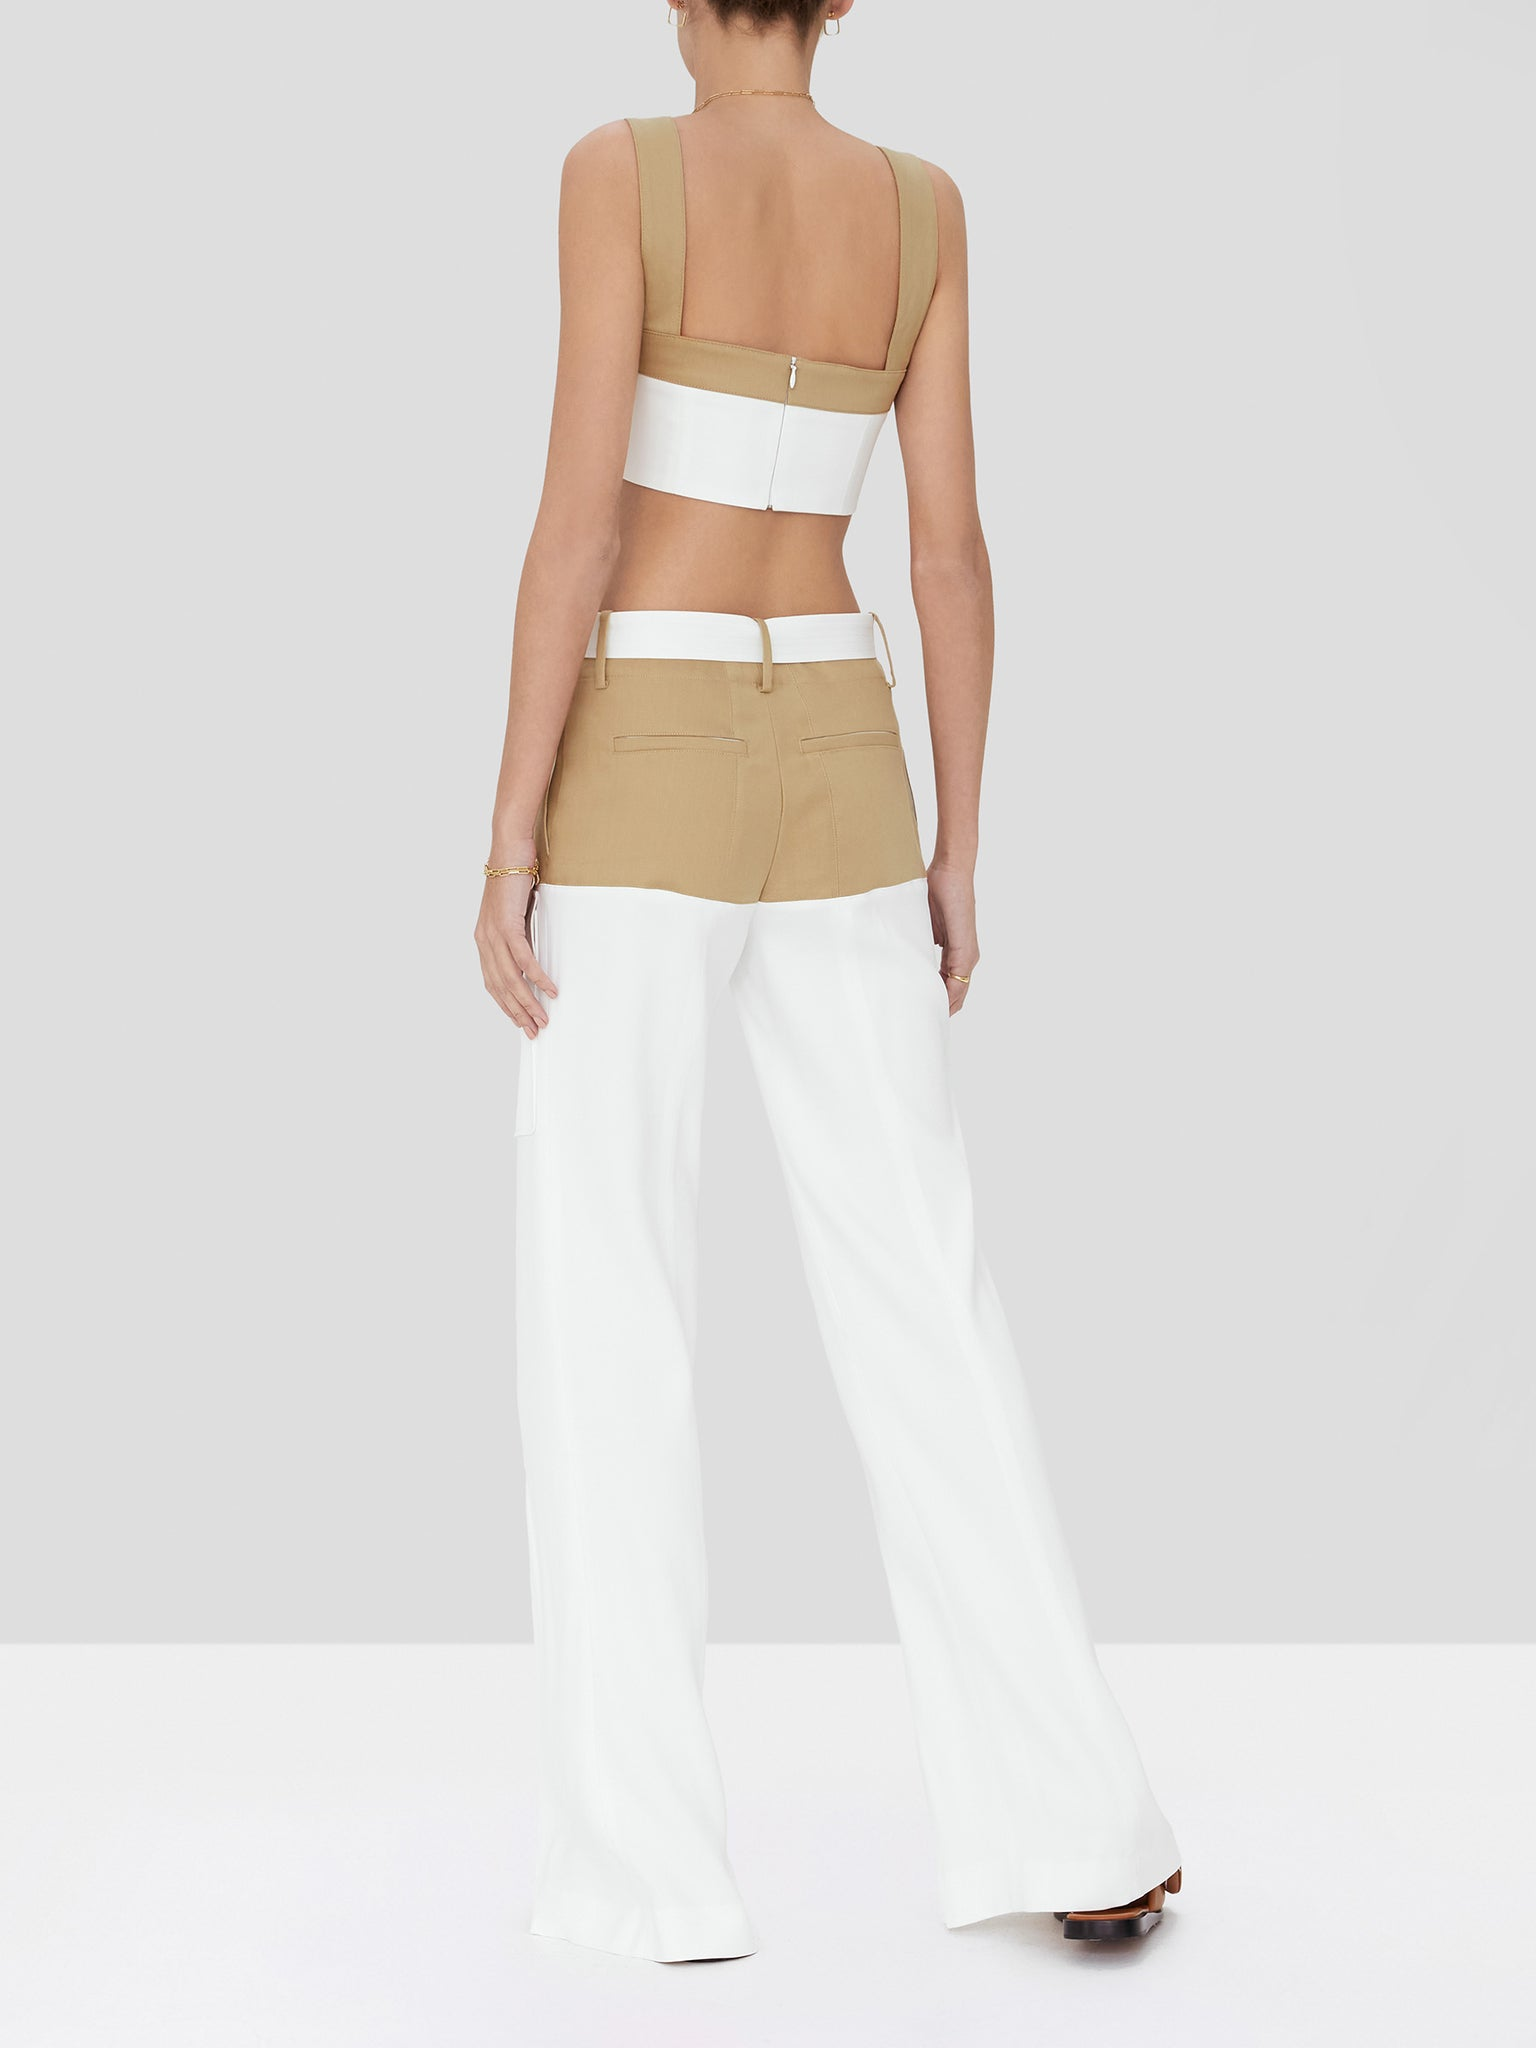 ossun pant in tan/white - Rear View